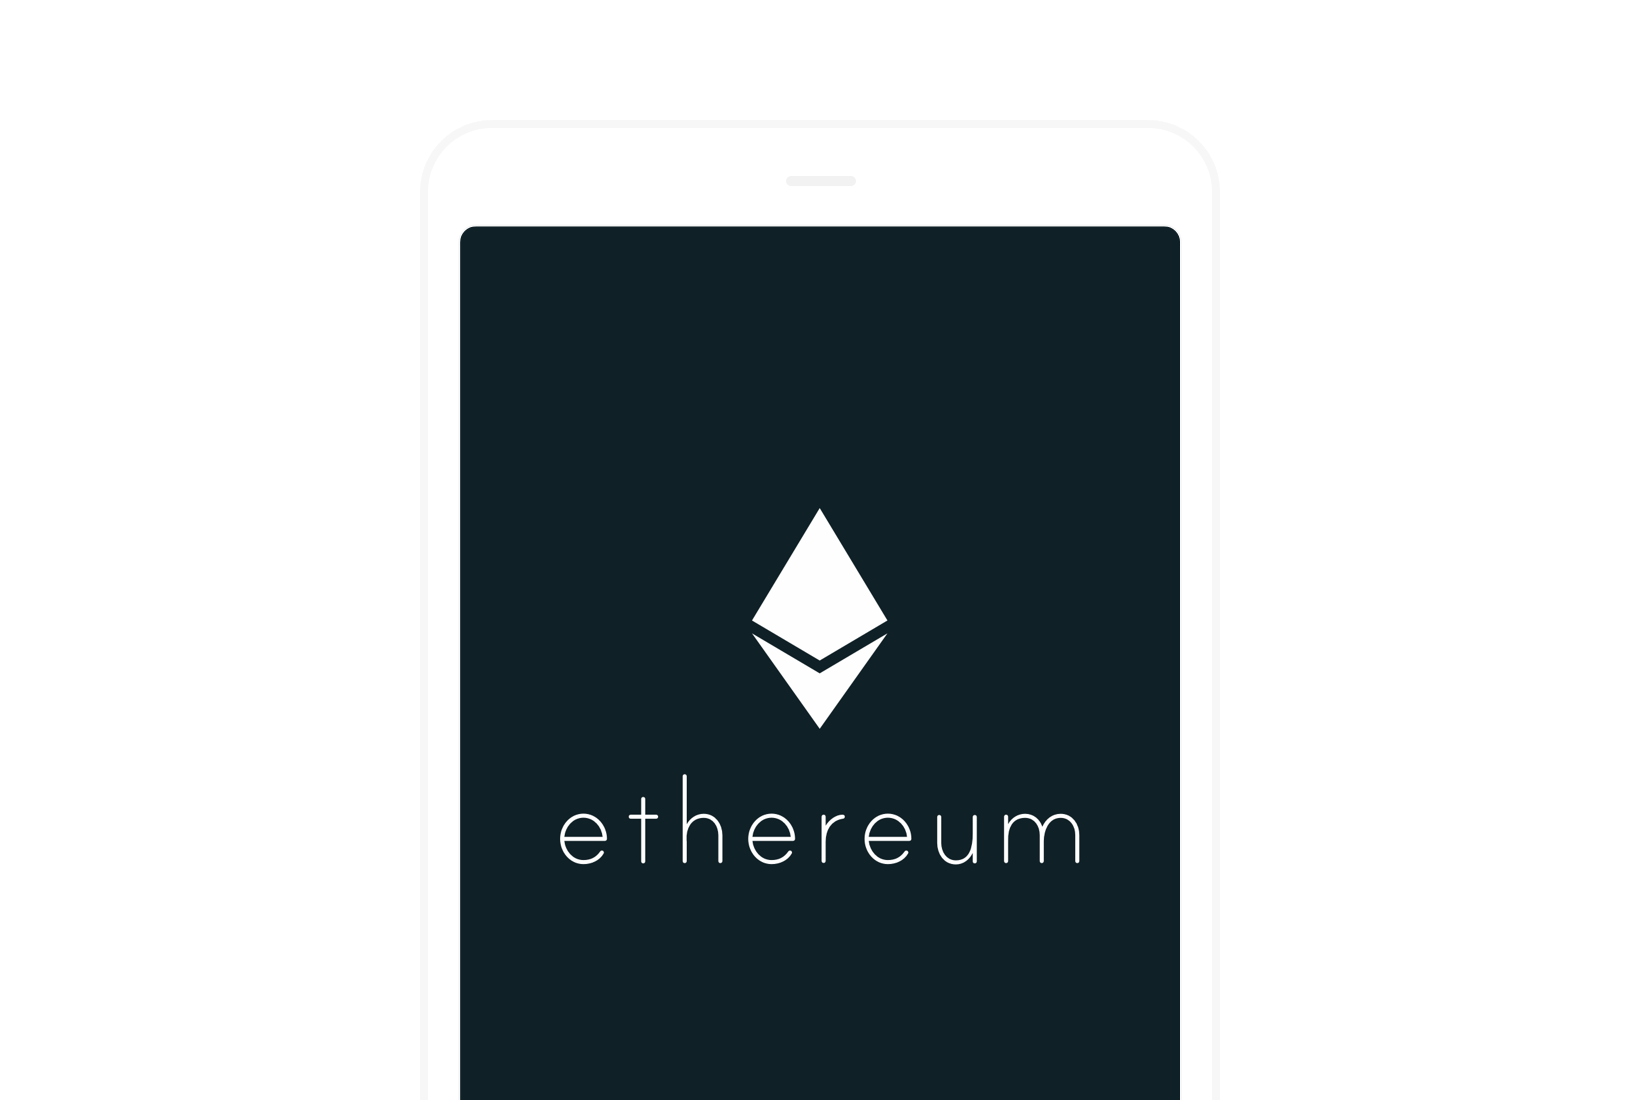 ethereum-ios-dev-kit